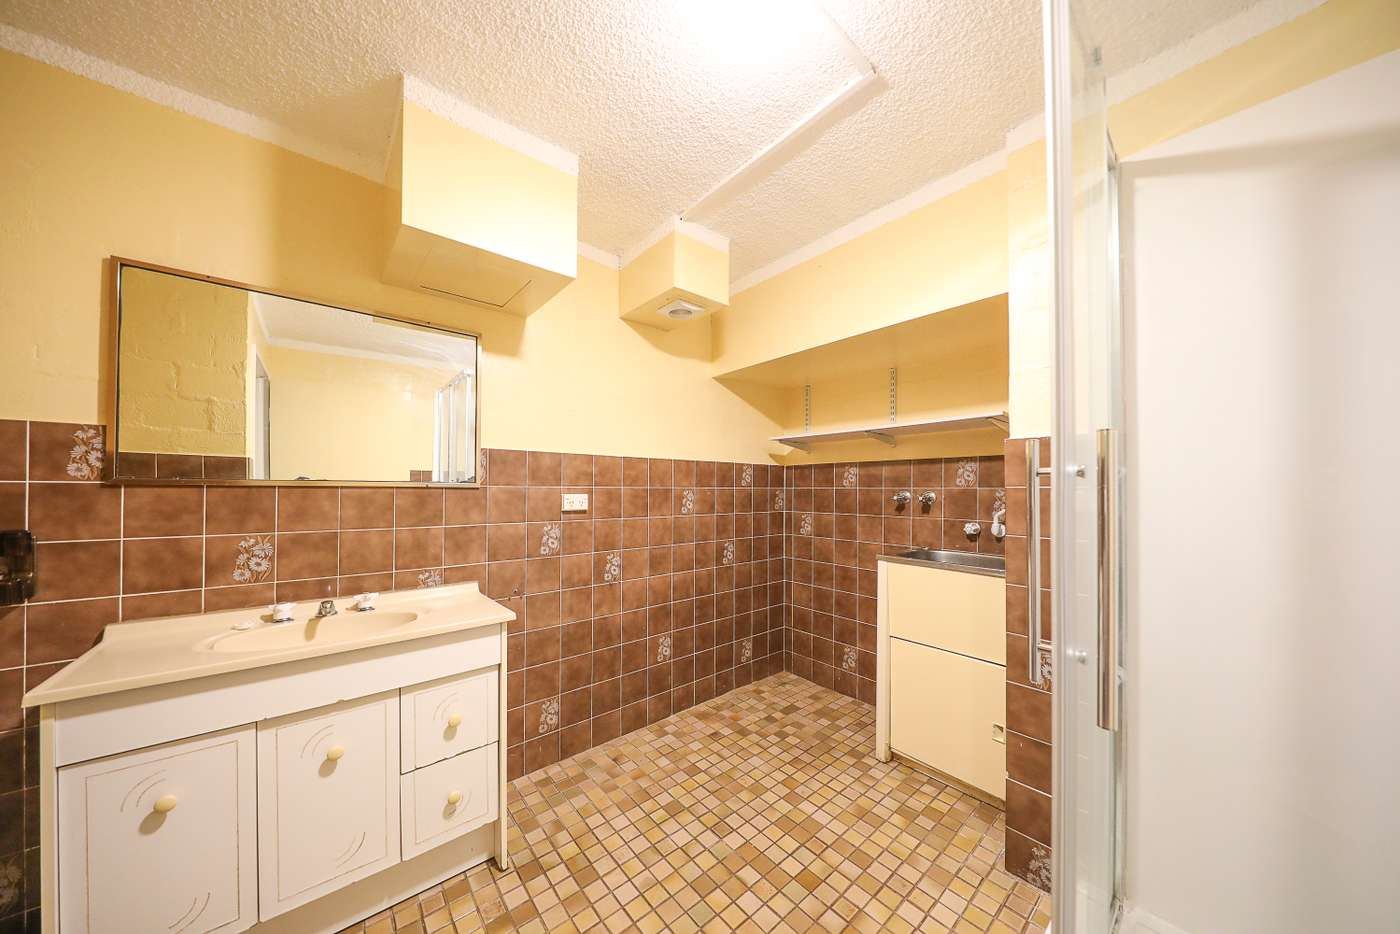 Seventh view of Homely flat listing, 4/2 Arika Avenue, Ocean Shores NSW 2483